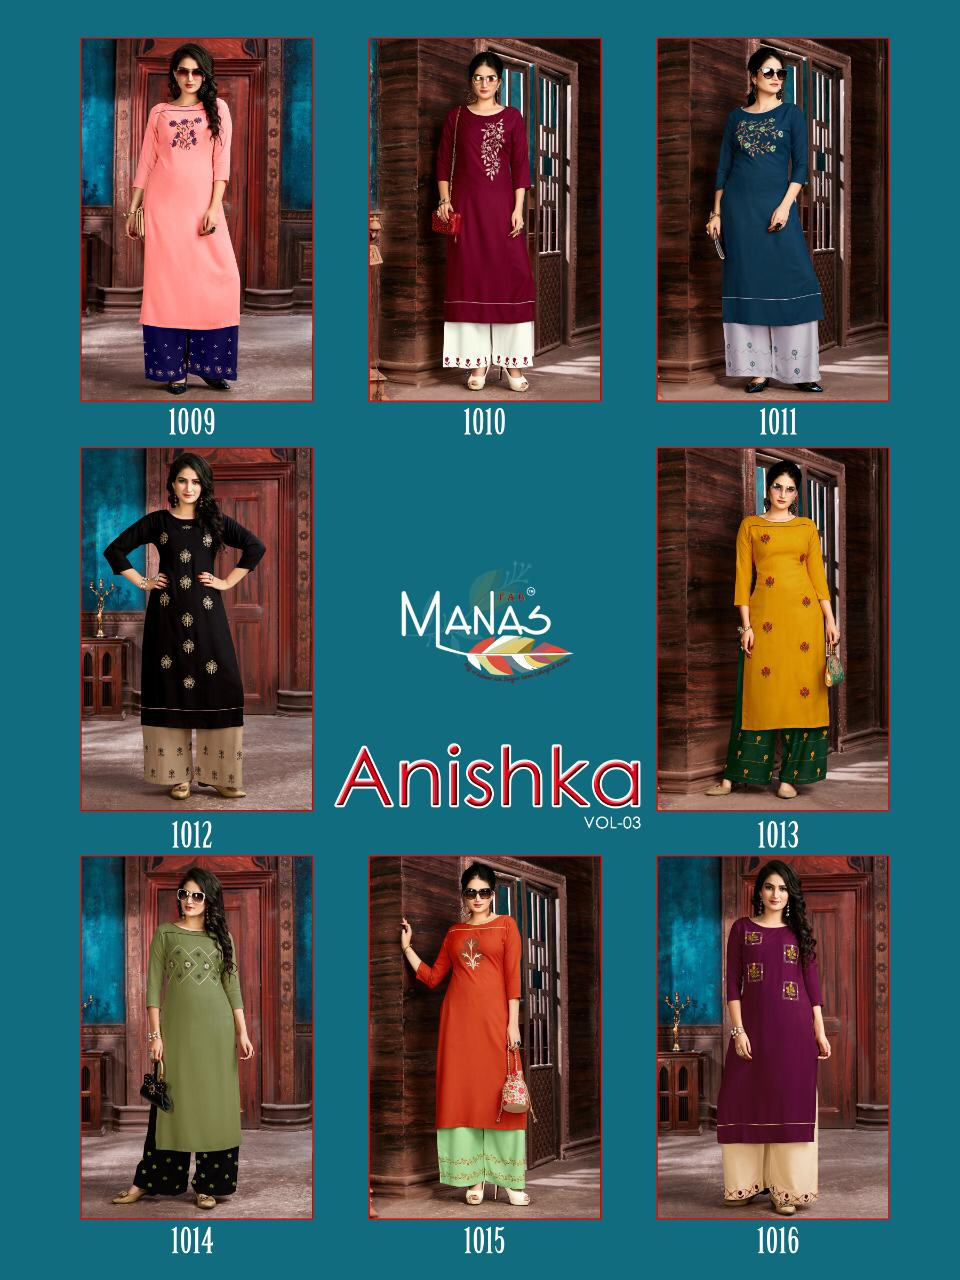 Manas Anishka Vol 3 collection 9